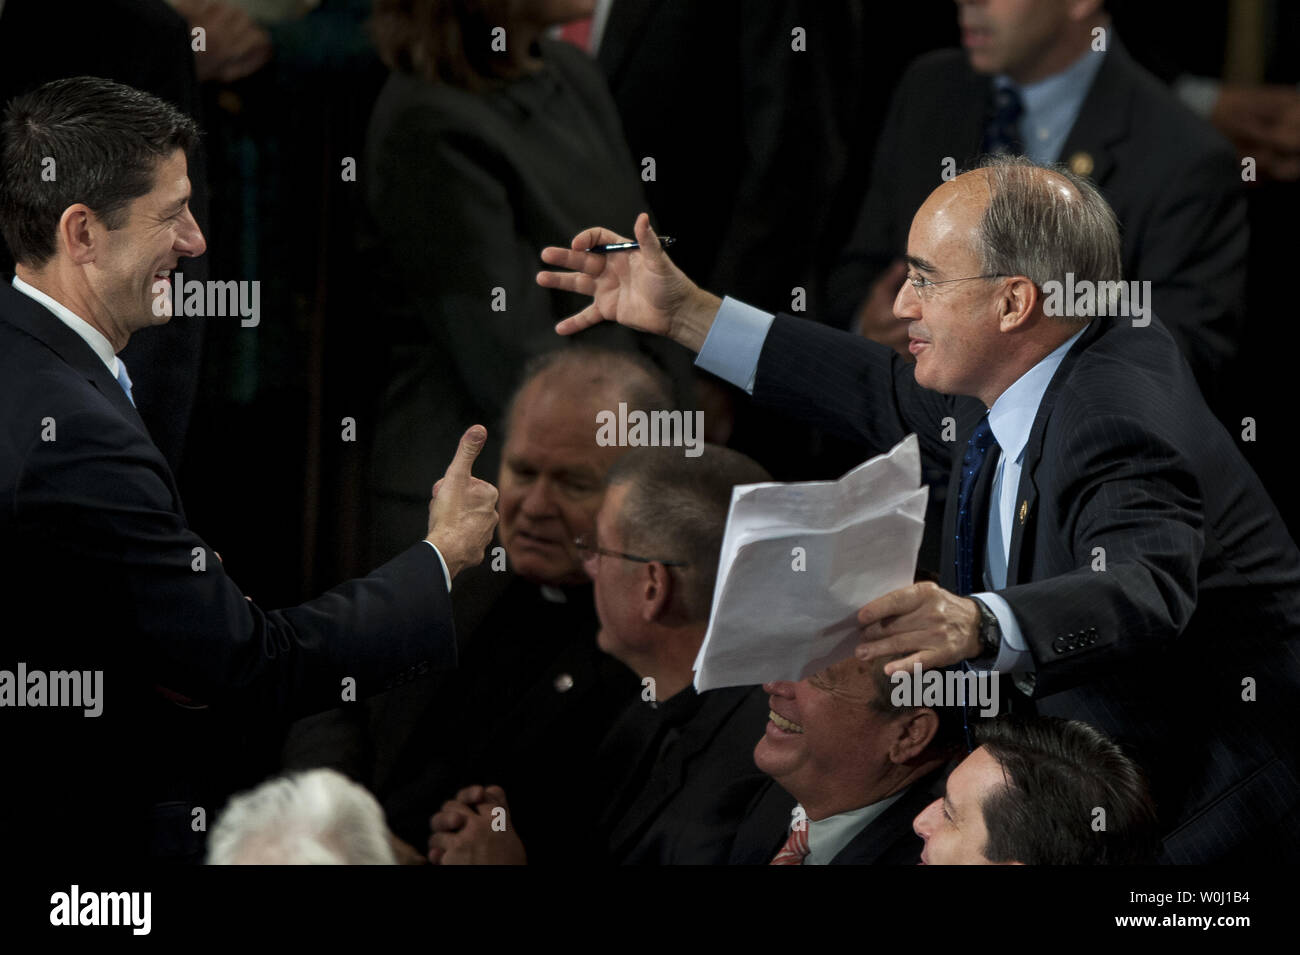 Republican caucus nominee for Speaker of the House, Rep. Paul Ryan (R-WI) is greeted by fellow Members of Congress on the floor  of the House of Representatives on on October 29, 2015 in Washington, D.C. Earlier the outgoing Speaker, Rep. John Boehner (R-OH), gave his farewell address to Congress. He is retiring on October 30, 2015. Photo by Pete Marovich/UPI - Stock Image